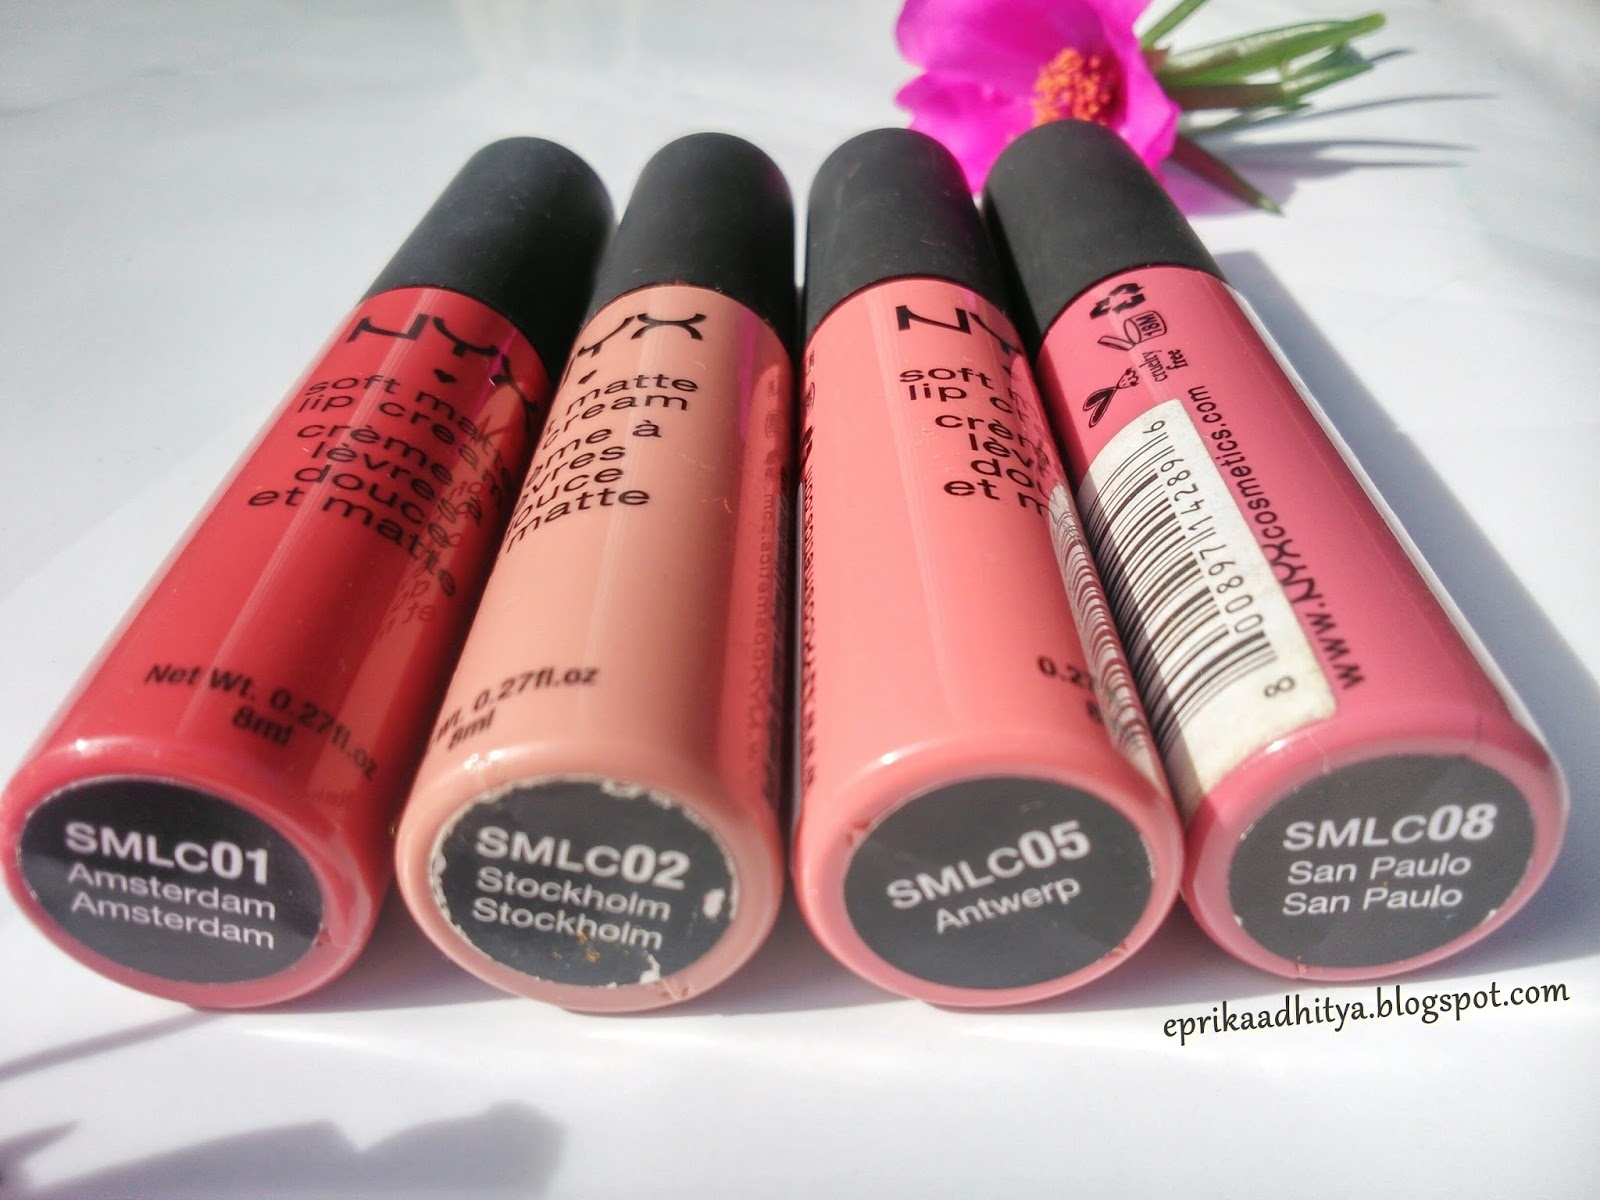 Promo Ecer Nyx Matte Me Lip Lipstik Update Warna Cream San Paulo Review Soft Thousands Of Miracles